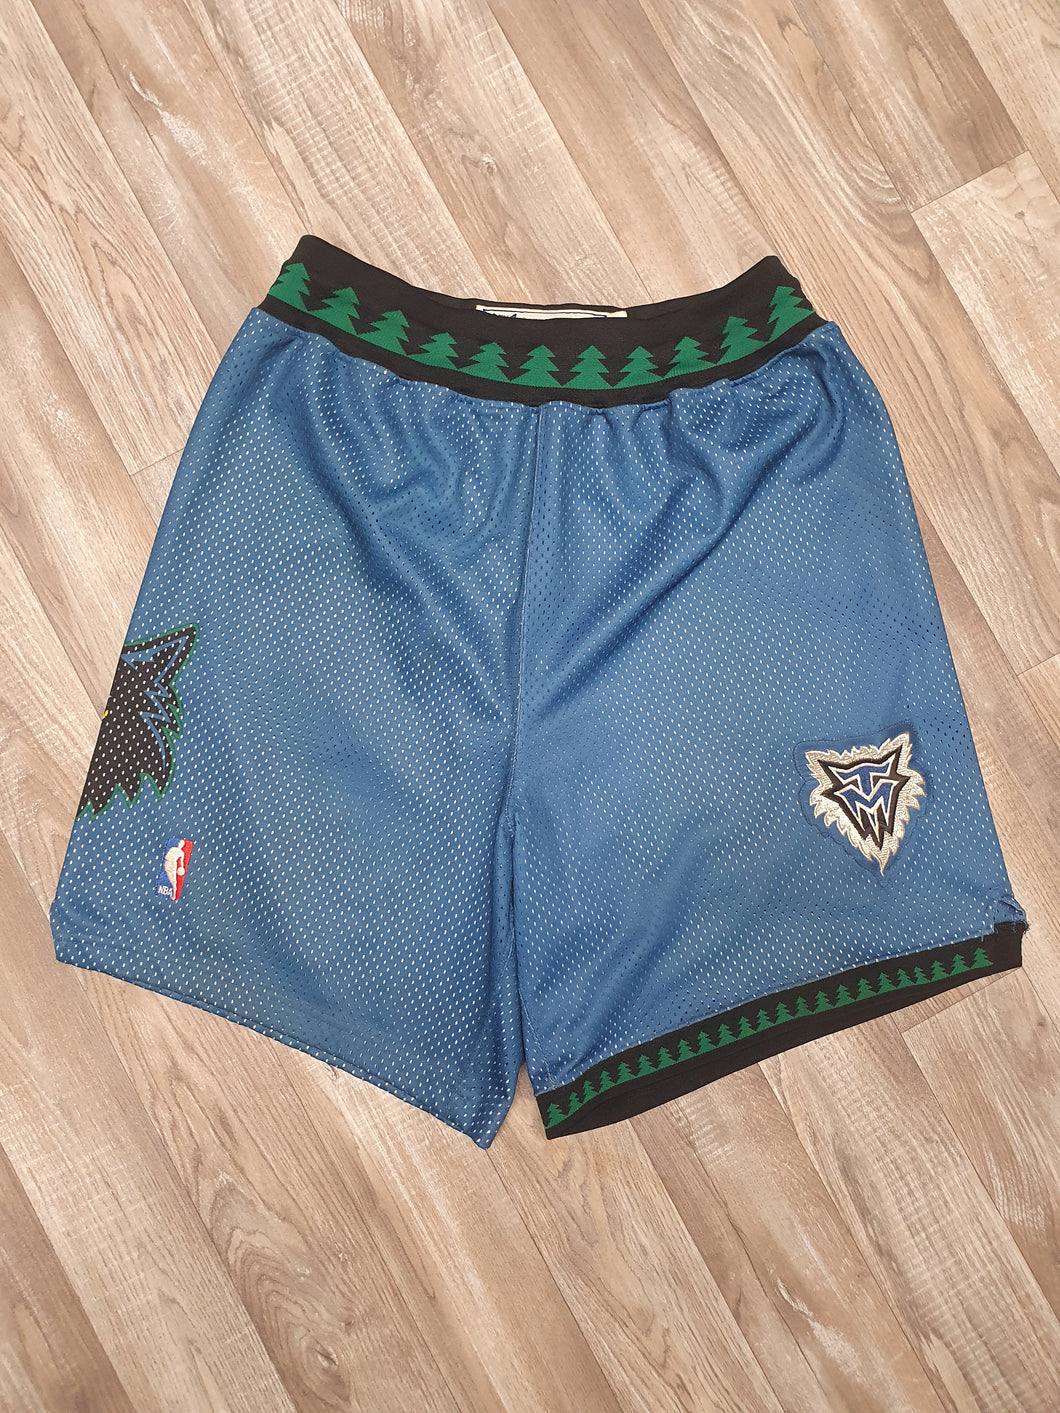 Minnesota Timberwolves Shorts Size Large